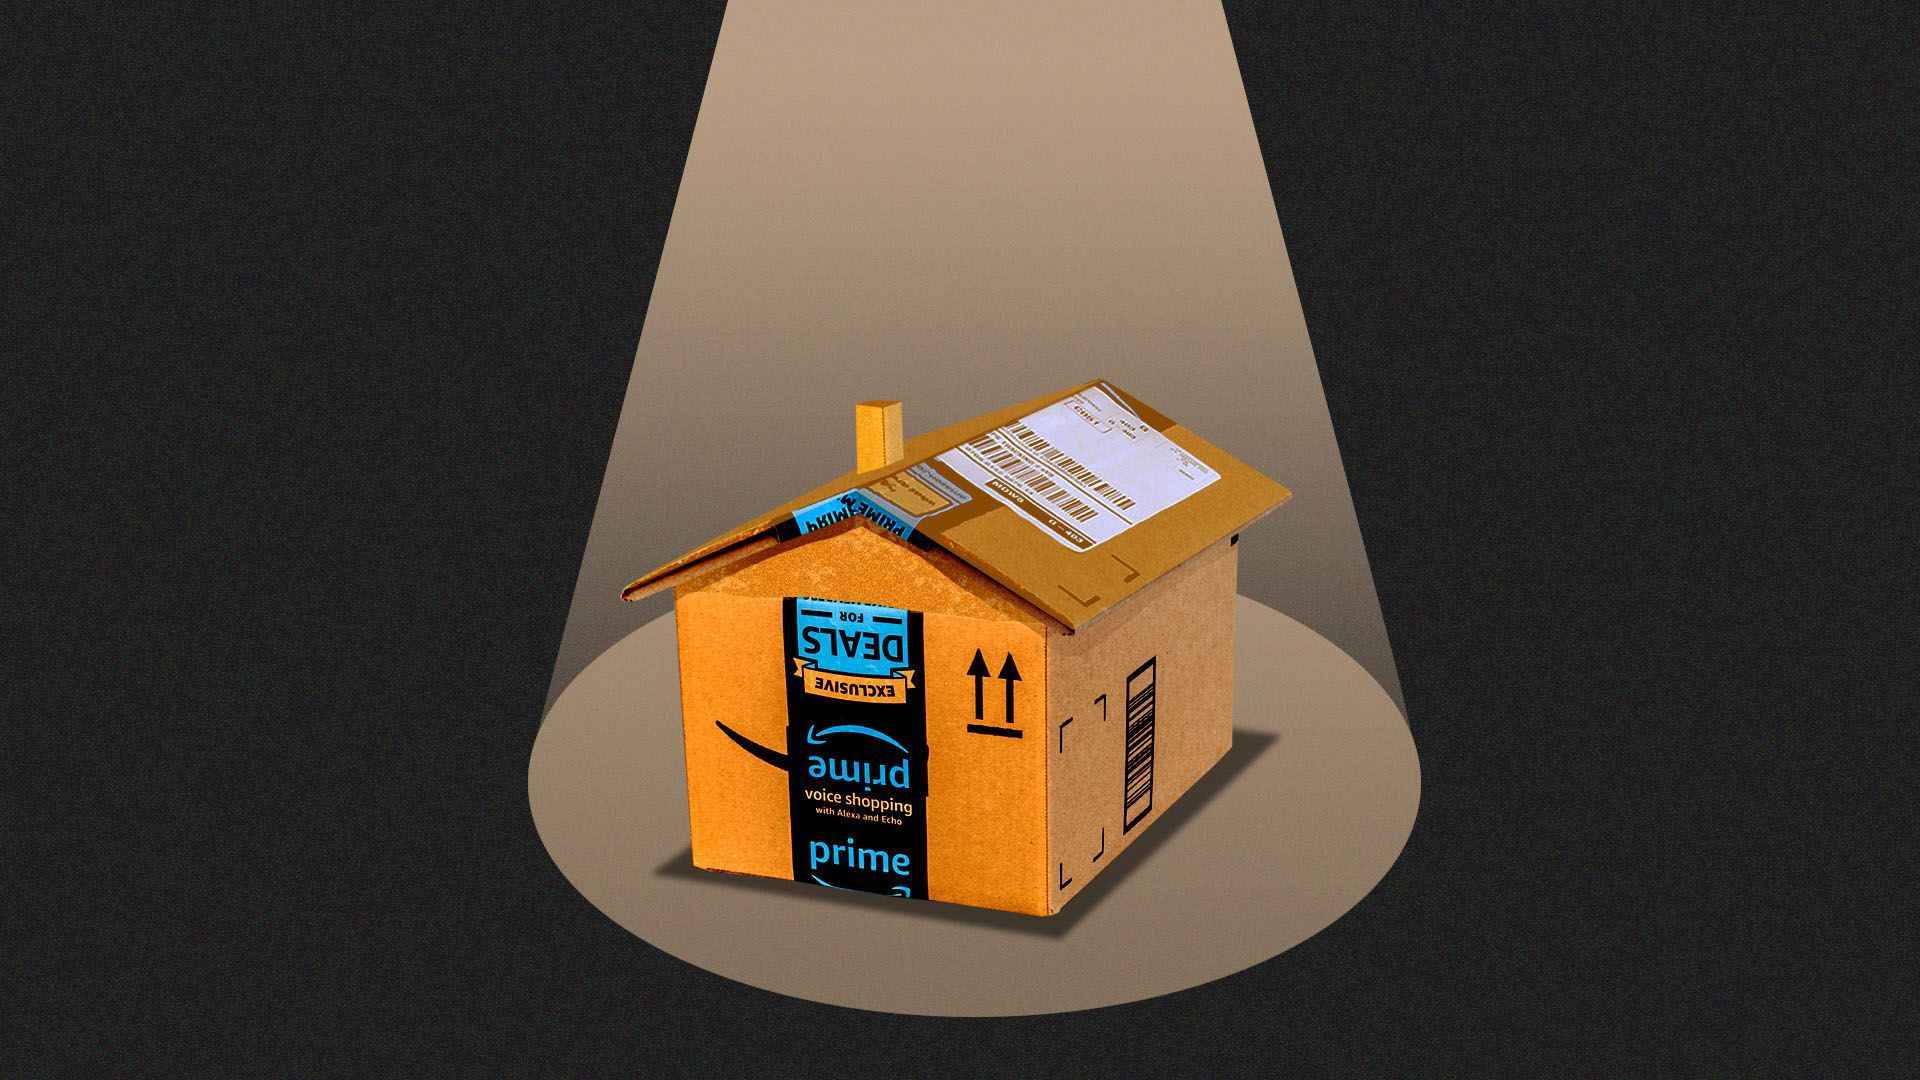 An illustration of a house, in the guise of an Amazon package, under a spotlight